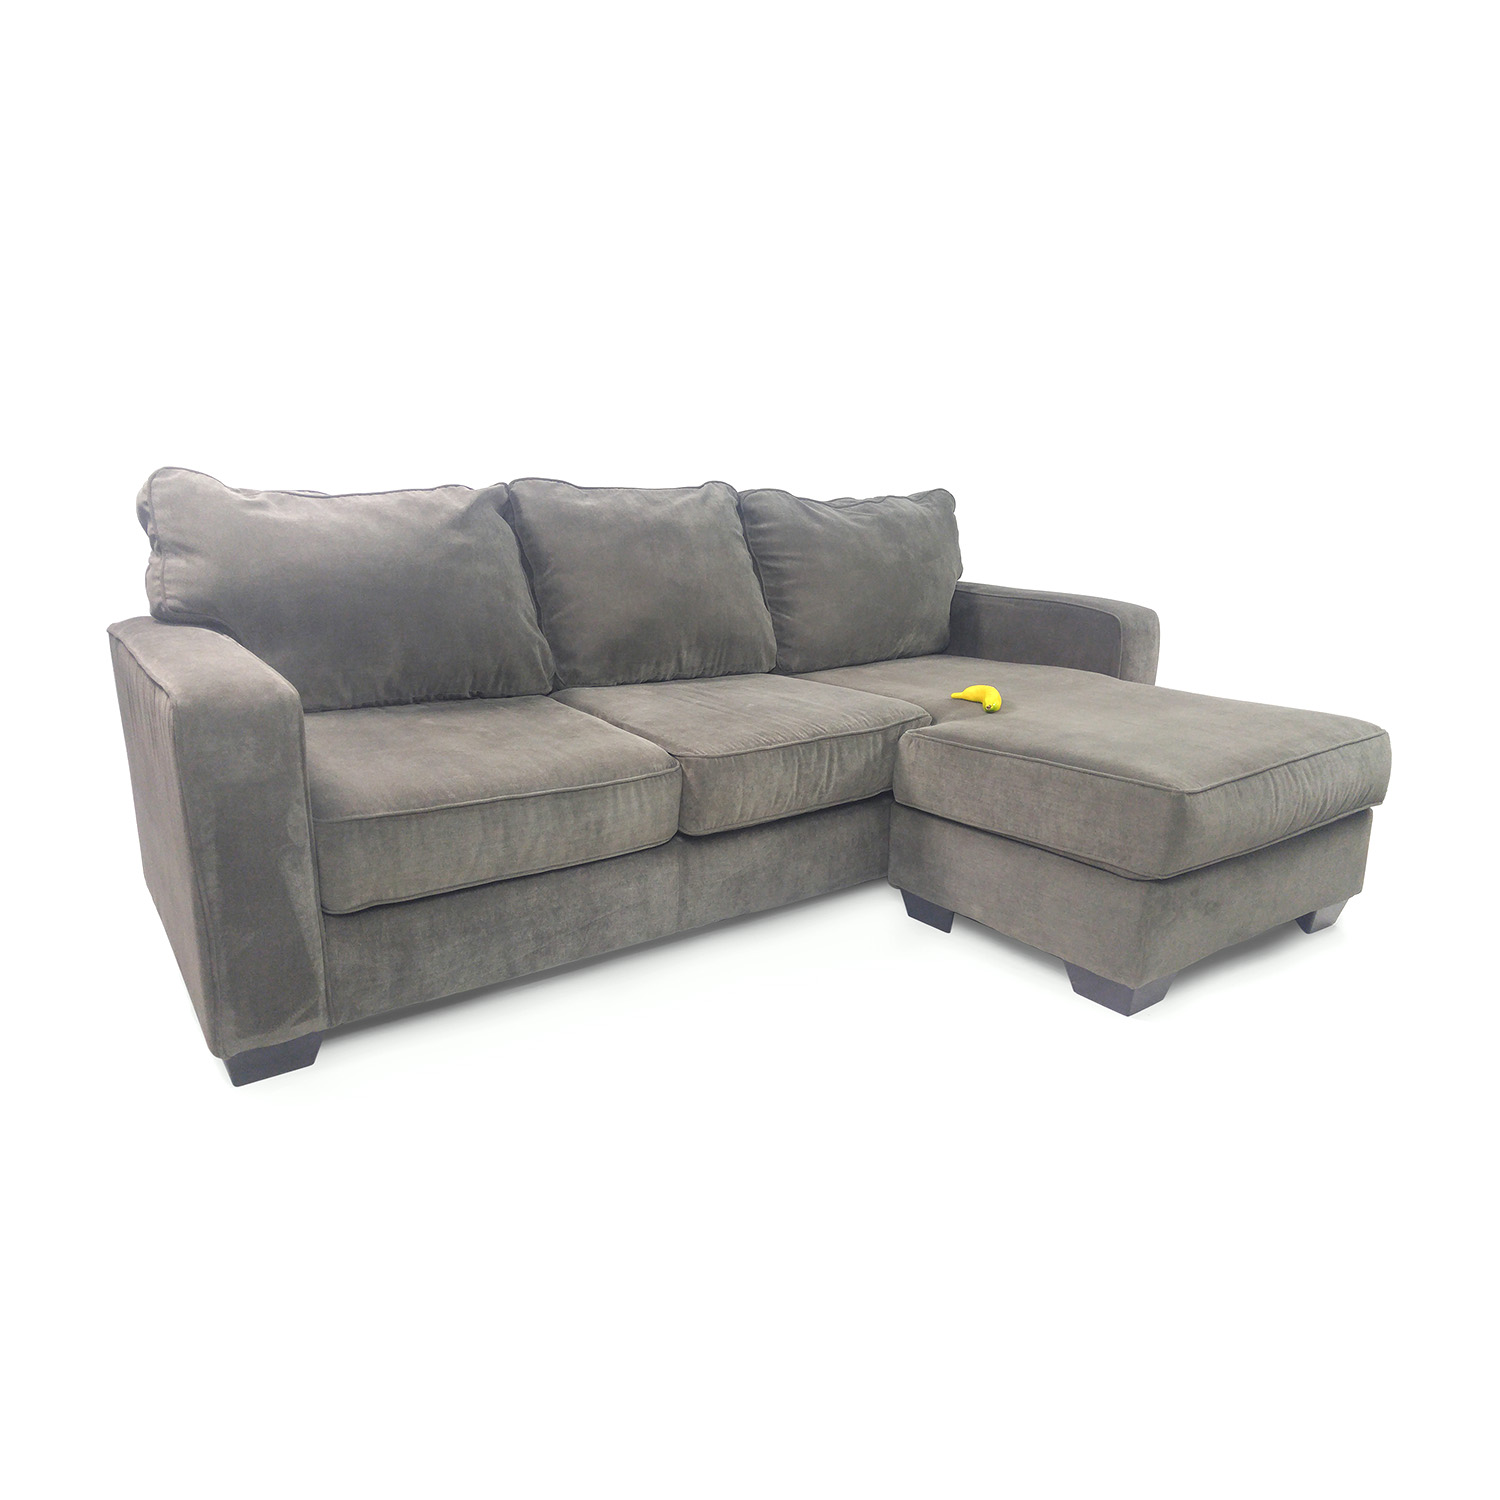 50 off ashley furniture hodan sofa chaise sofas for Ashley furniture chaise lounge